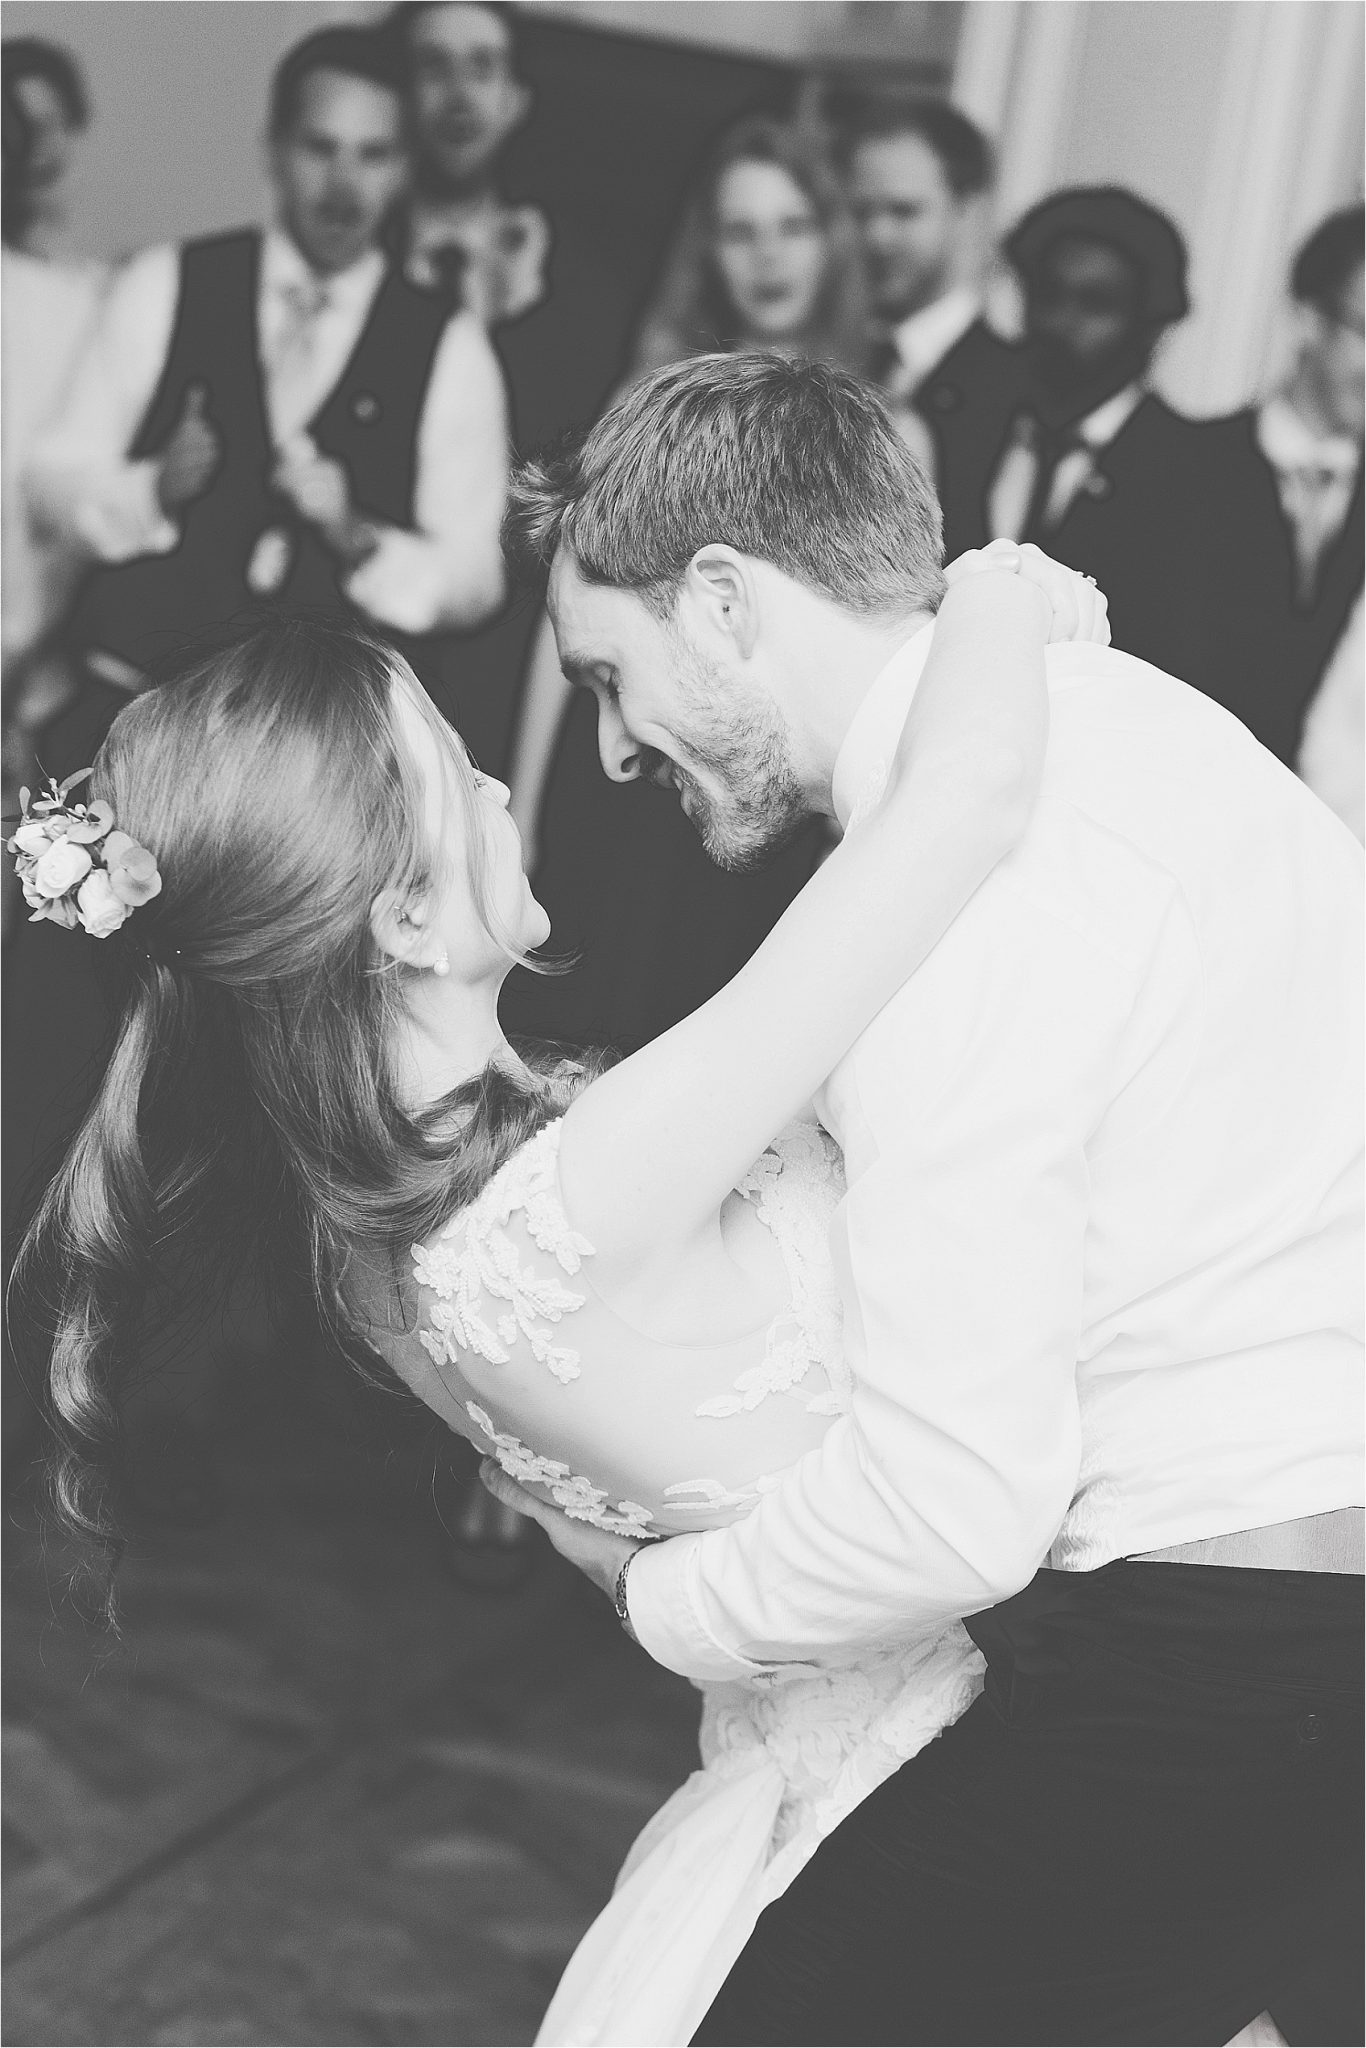 Bride and groom dancing. Picture in black and white